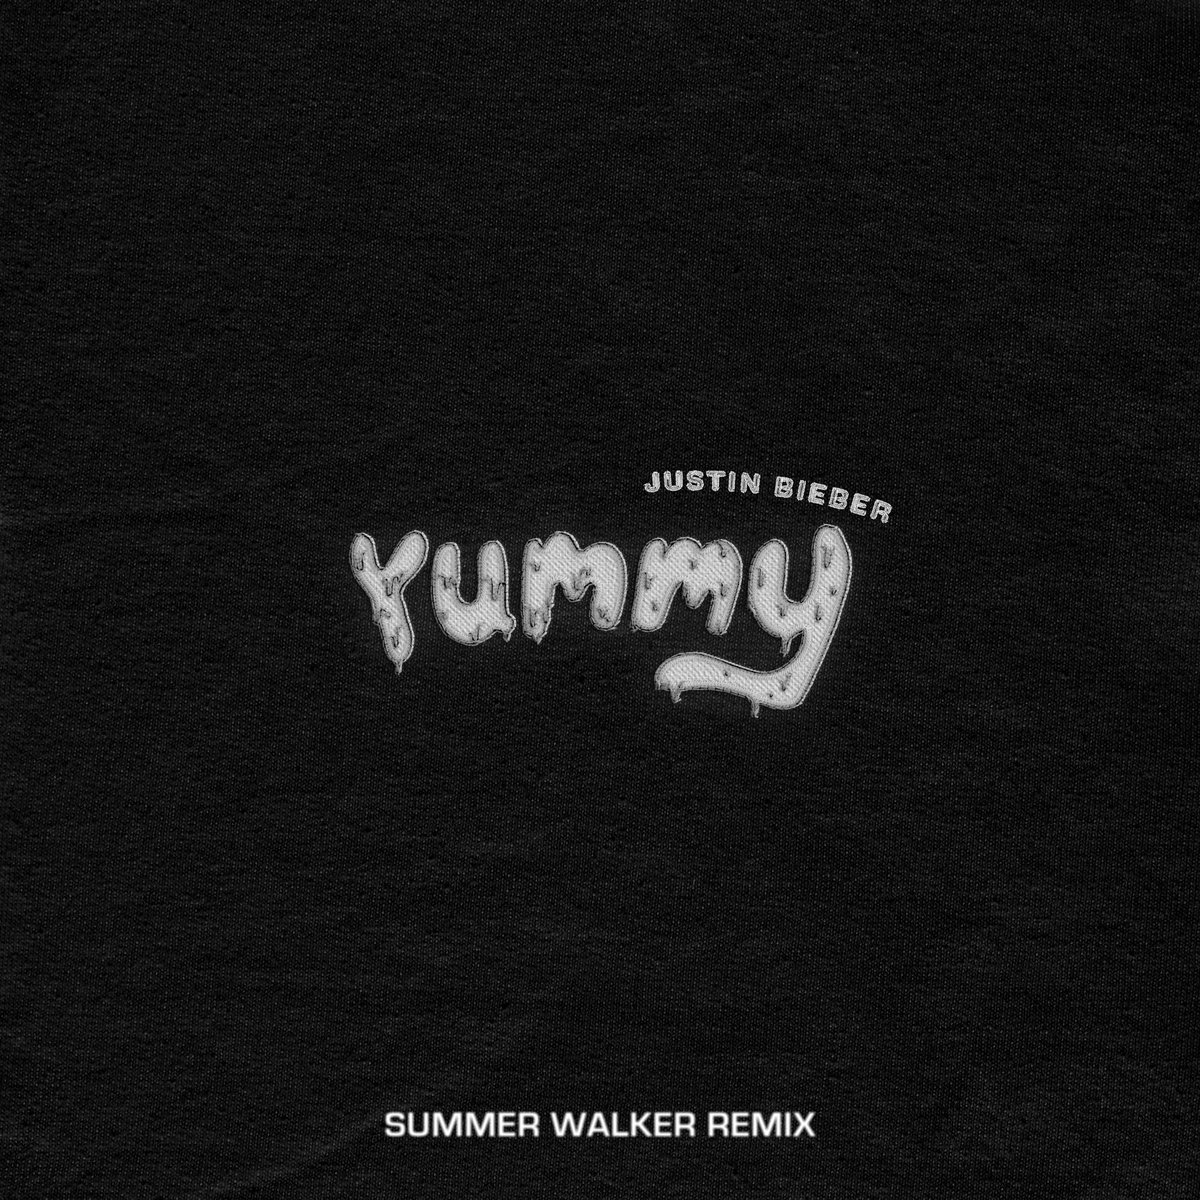 Tomorrow @IAMSUMMERWALKER #yummy remix